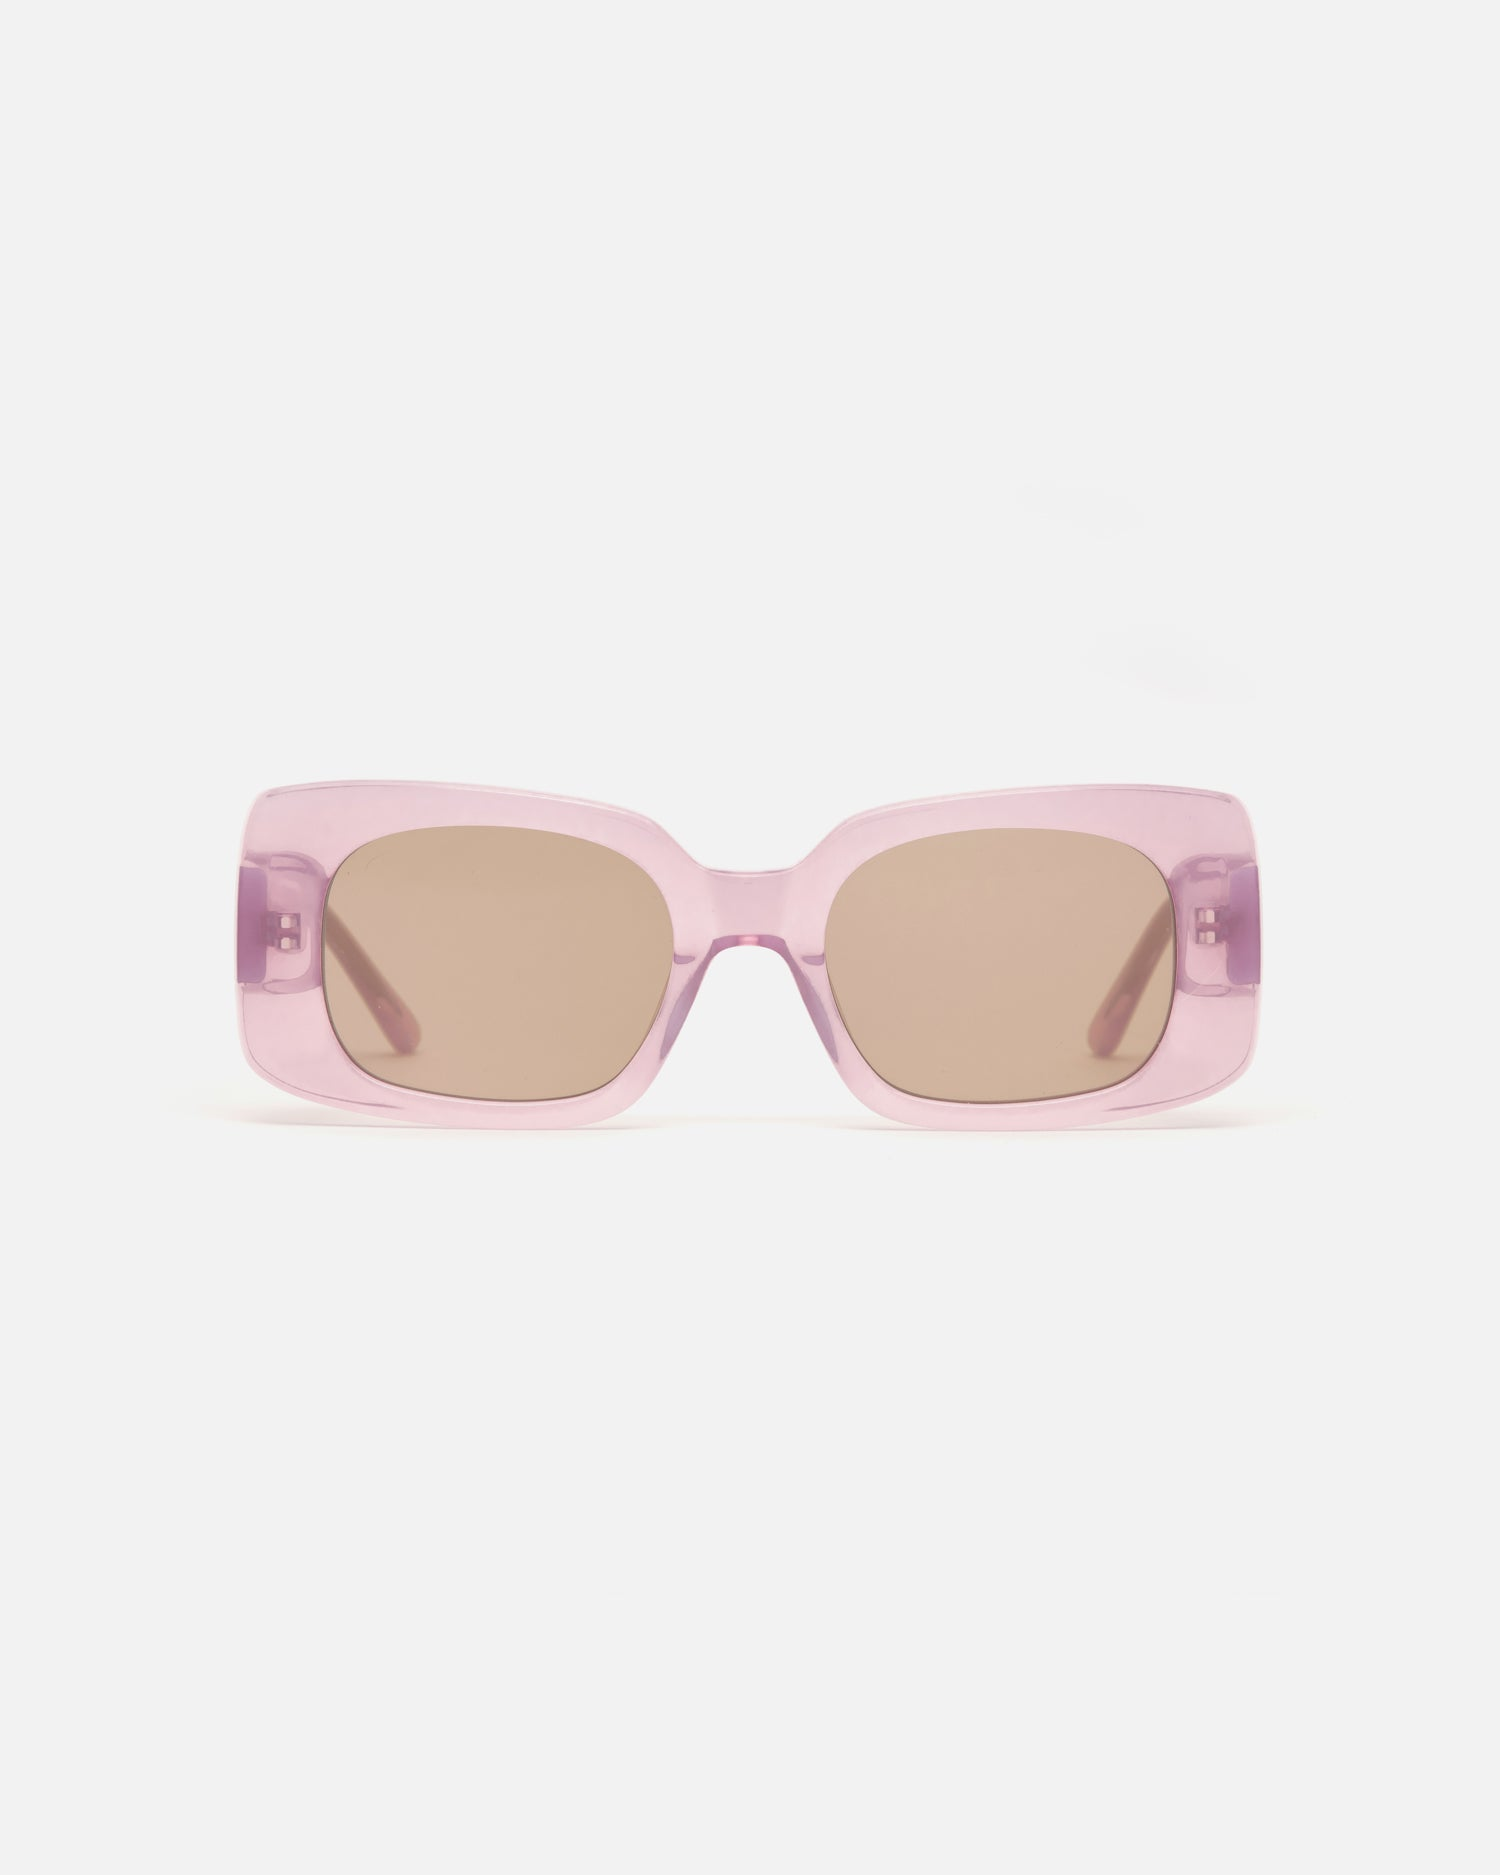 Lu Goldie Coco square Sunglasses in lilac purple acetate with tan brown lenses, front